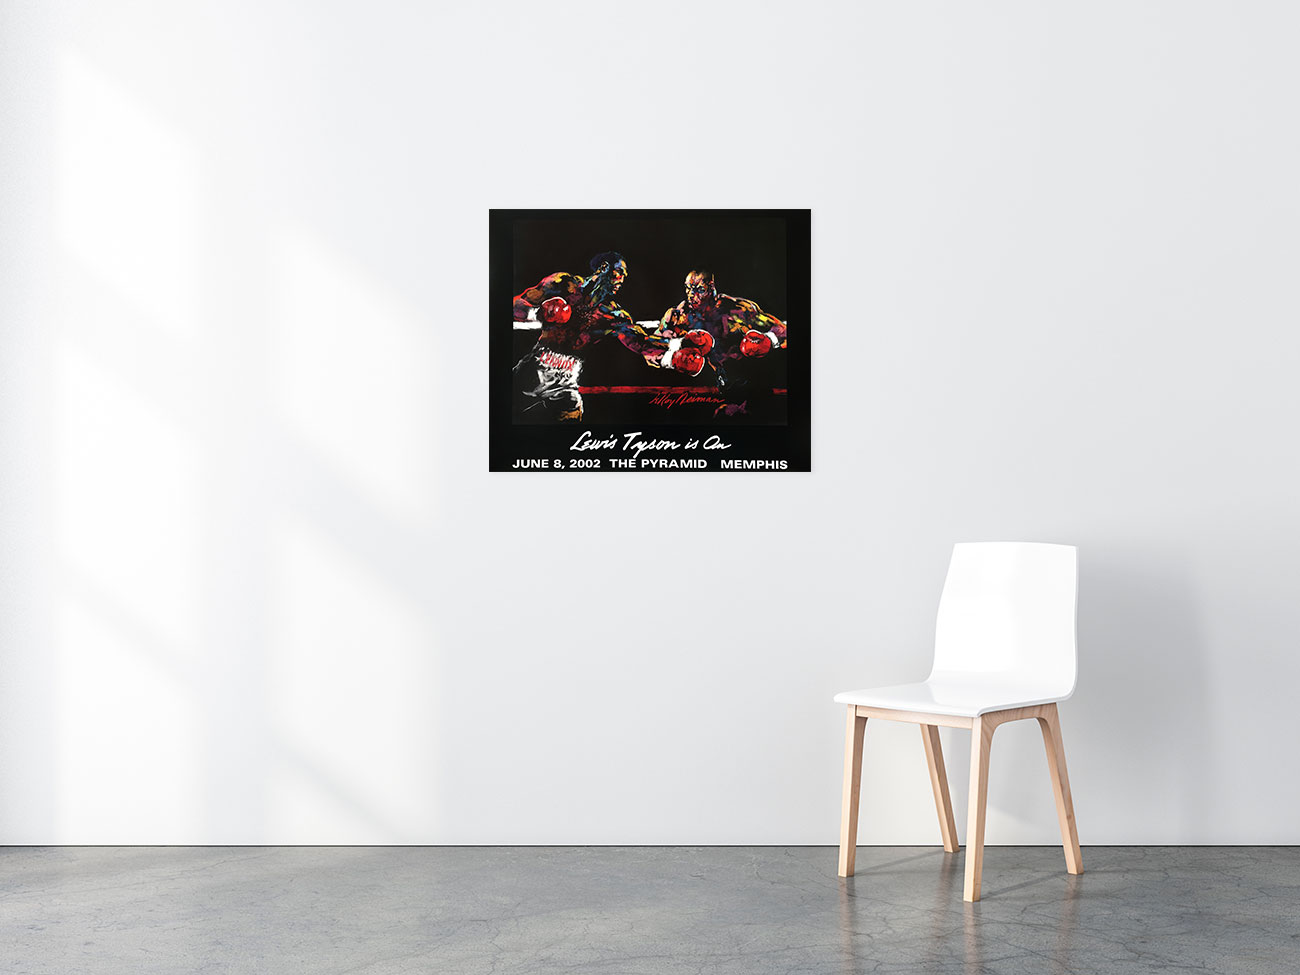 Lewis vs. Tyson is On poster in situ